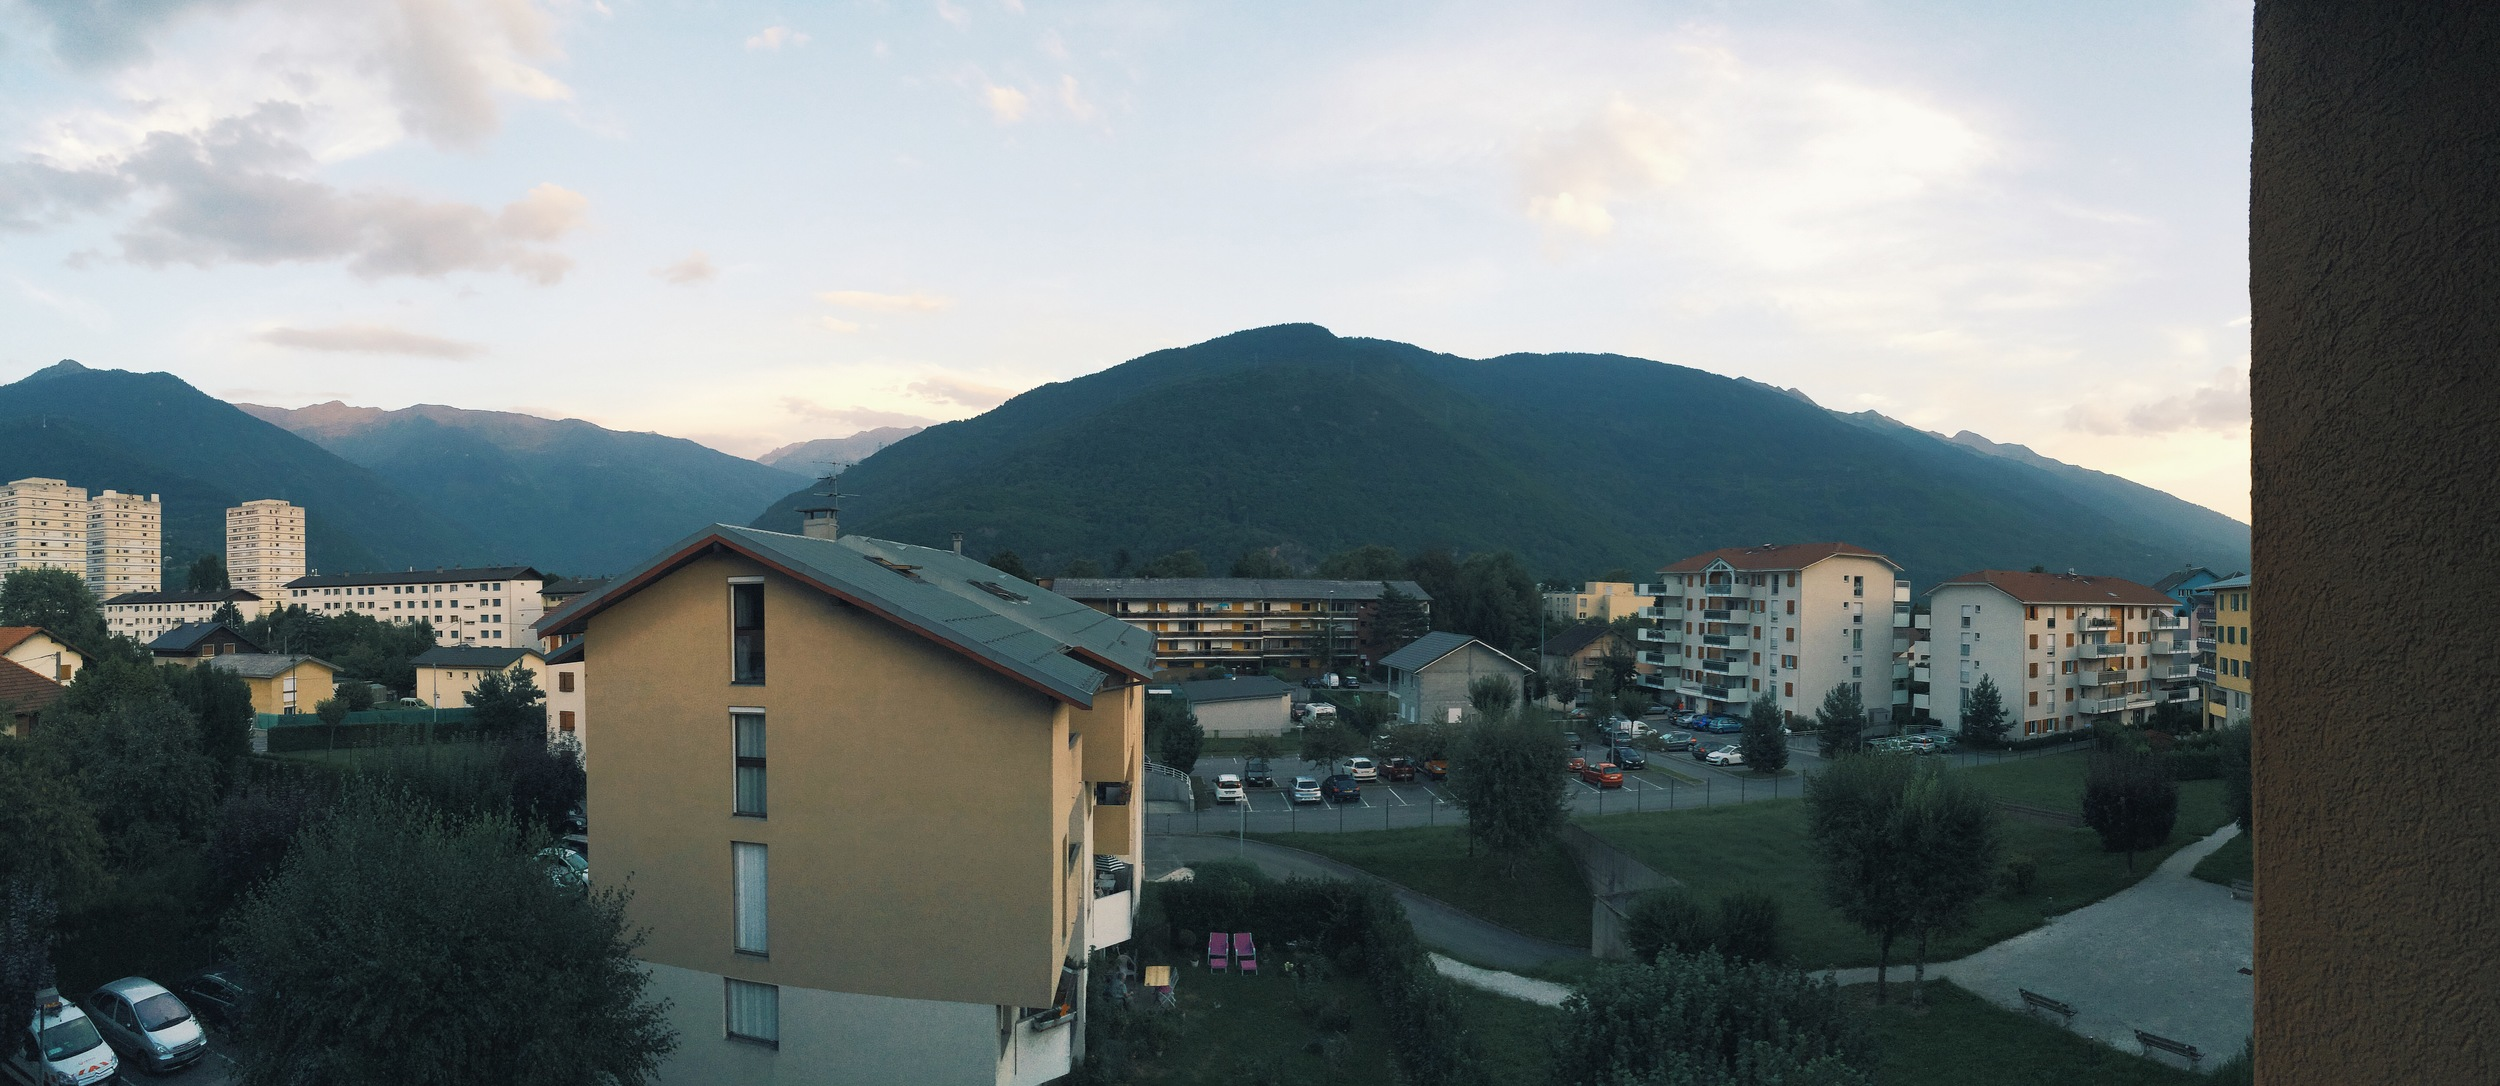 One more view from our balcony.